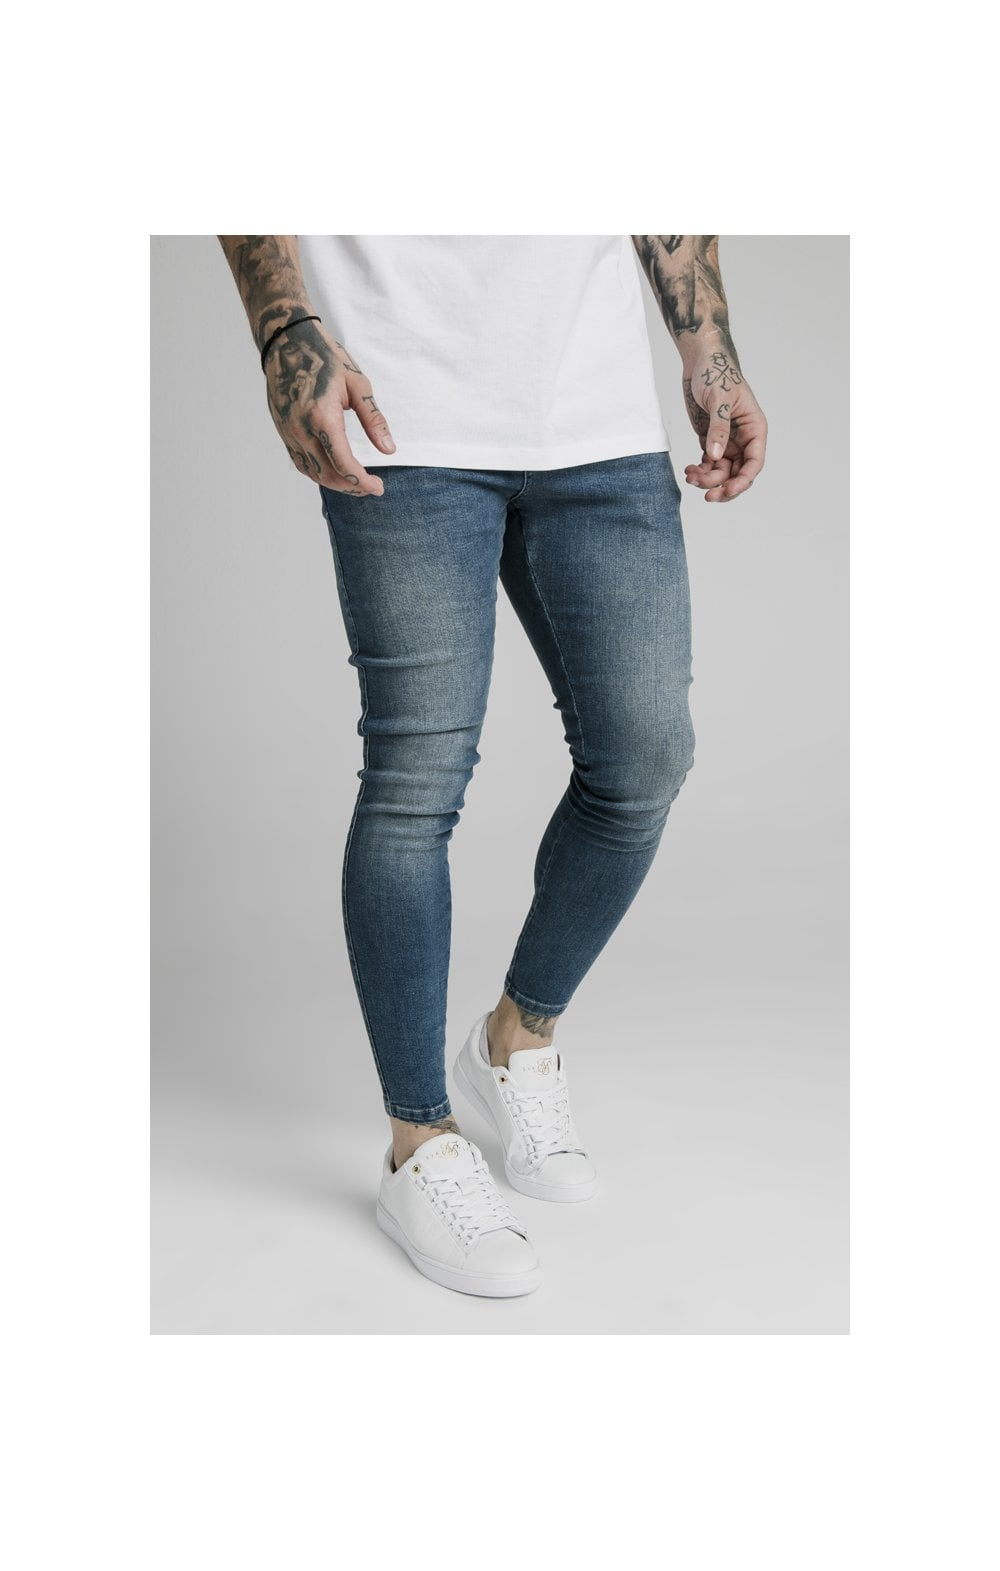 SikSilk Skinny Denim – Midstone (2)